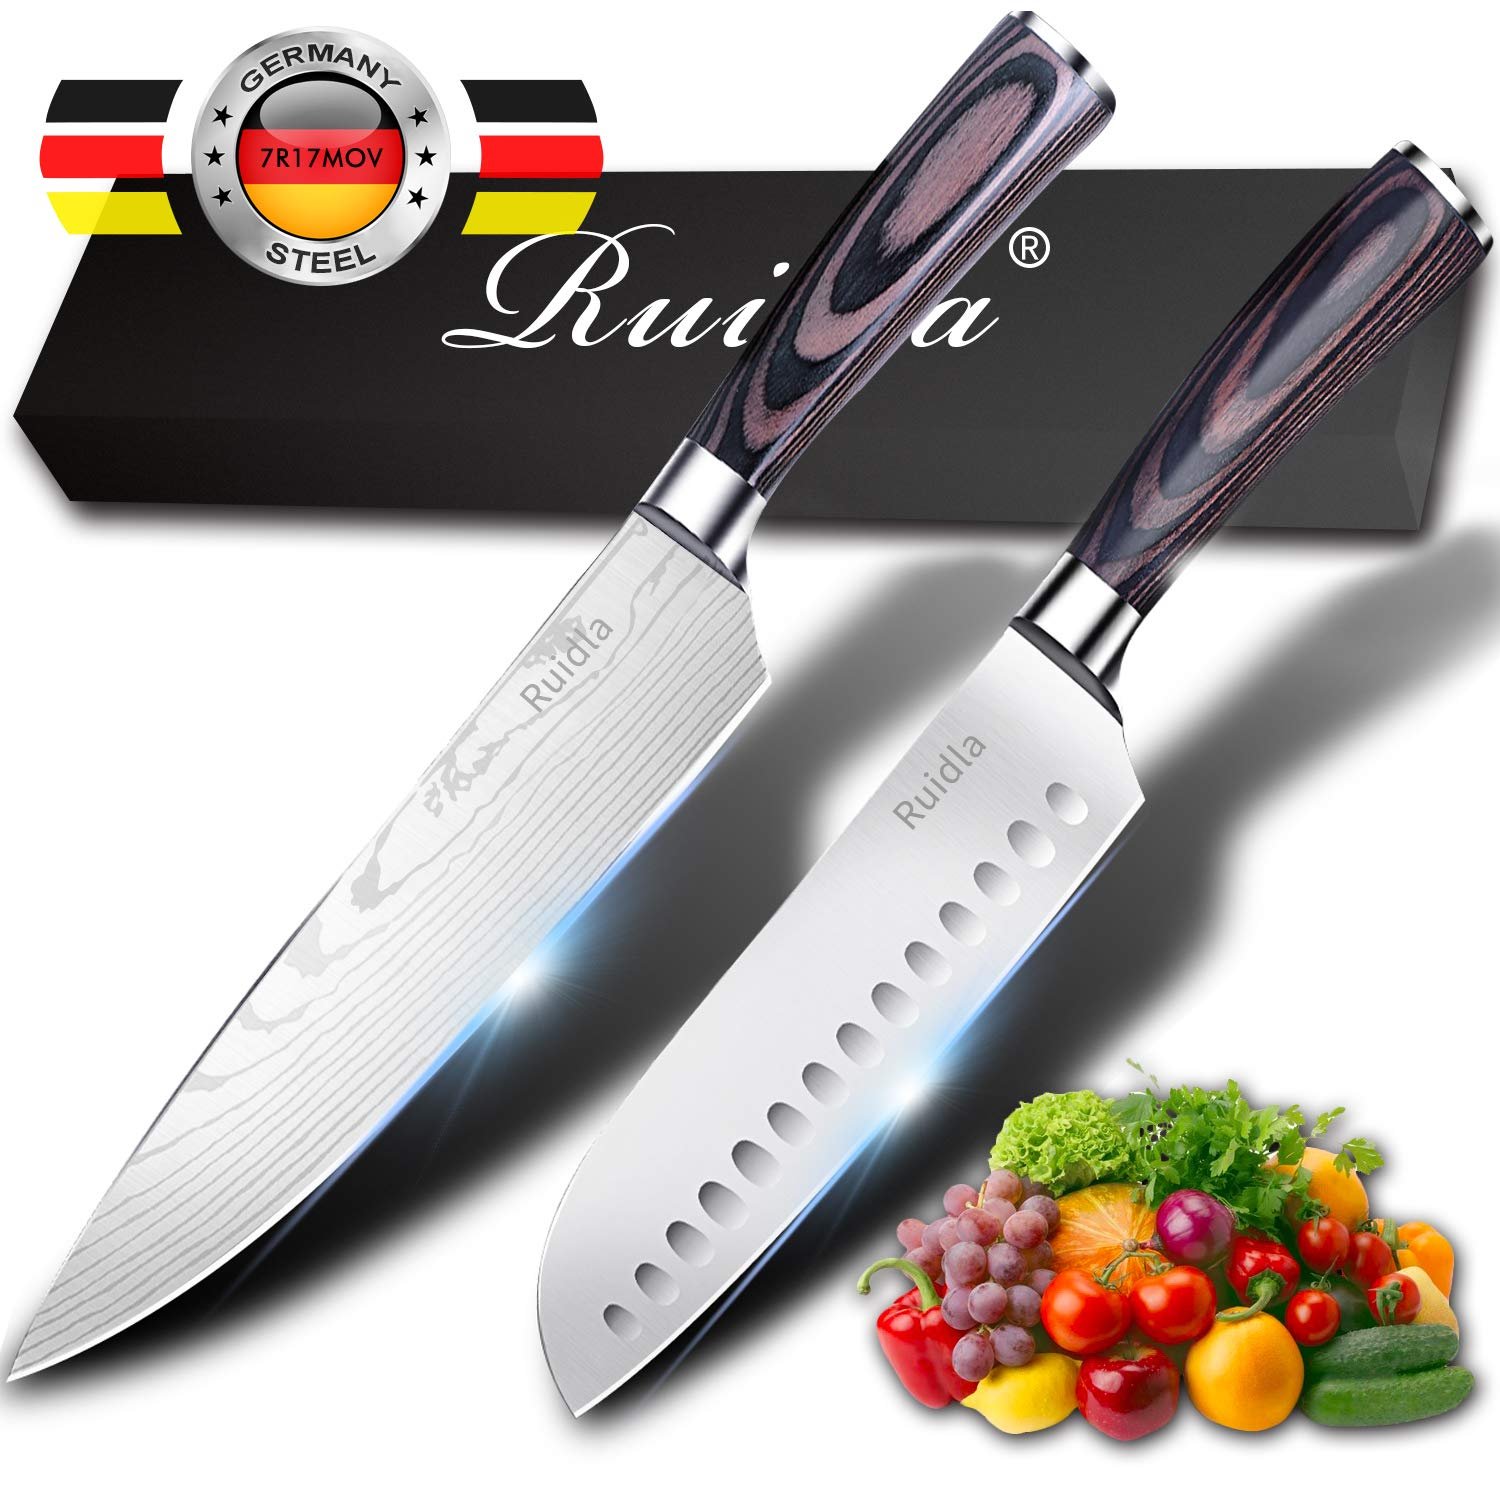 Kitchen Knife Ruidla 2 Piece Sharp Chef Knife, 8 inch Chef Knife, 7 inch Gyutou Knives, German Stainless Steel Cooking Knife with Ergonomic Handle for Home Kitchen Restaurant by Ruidla